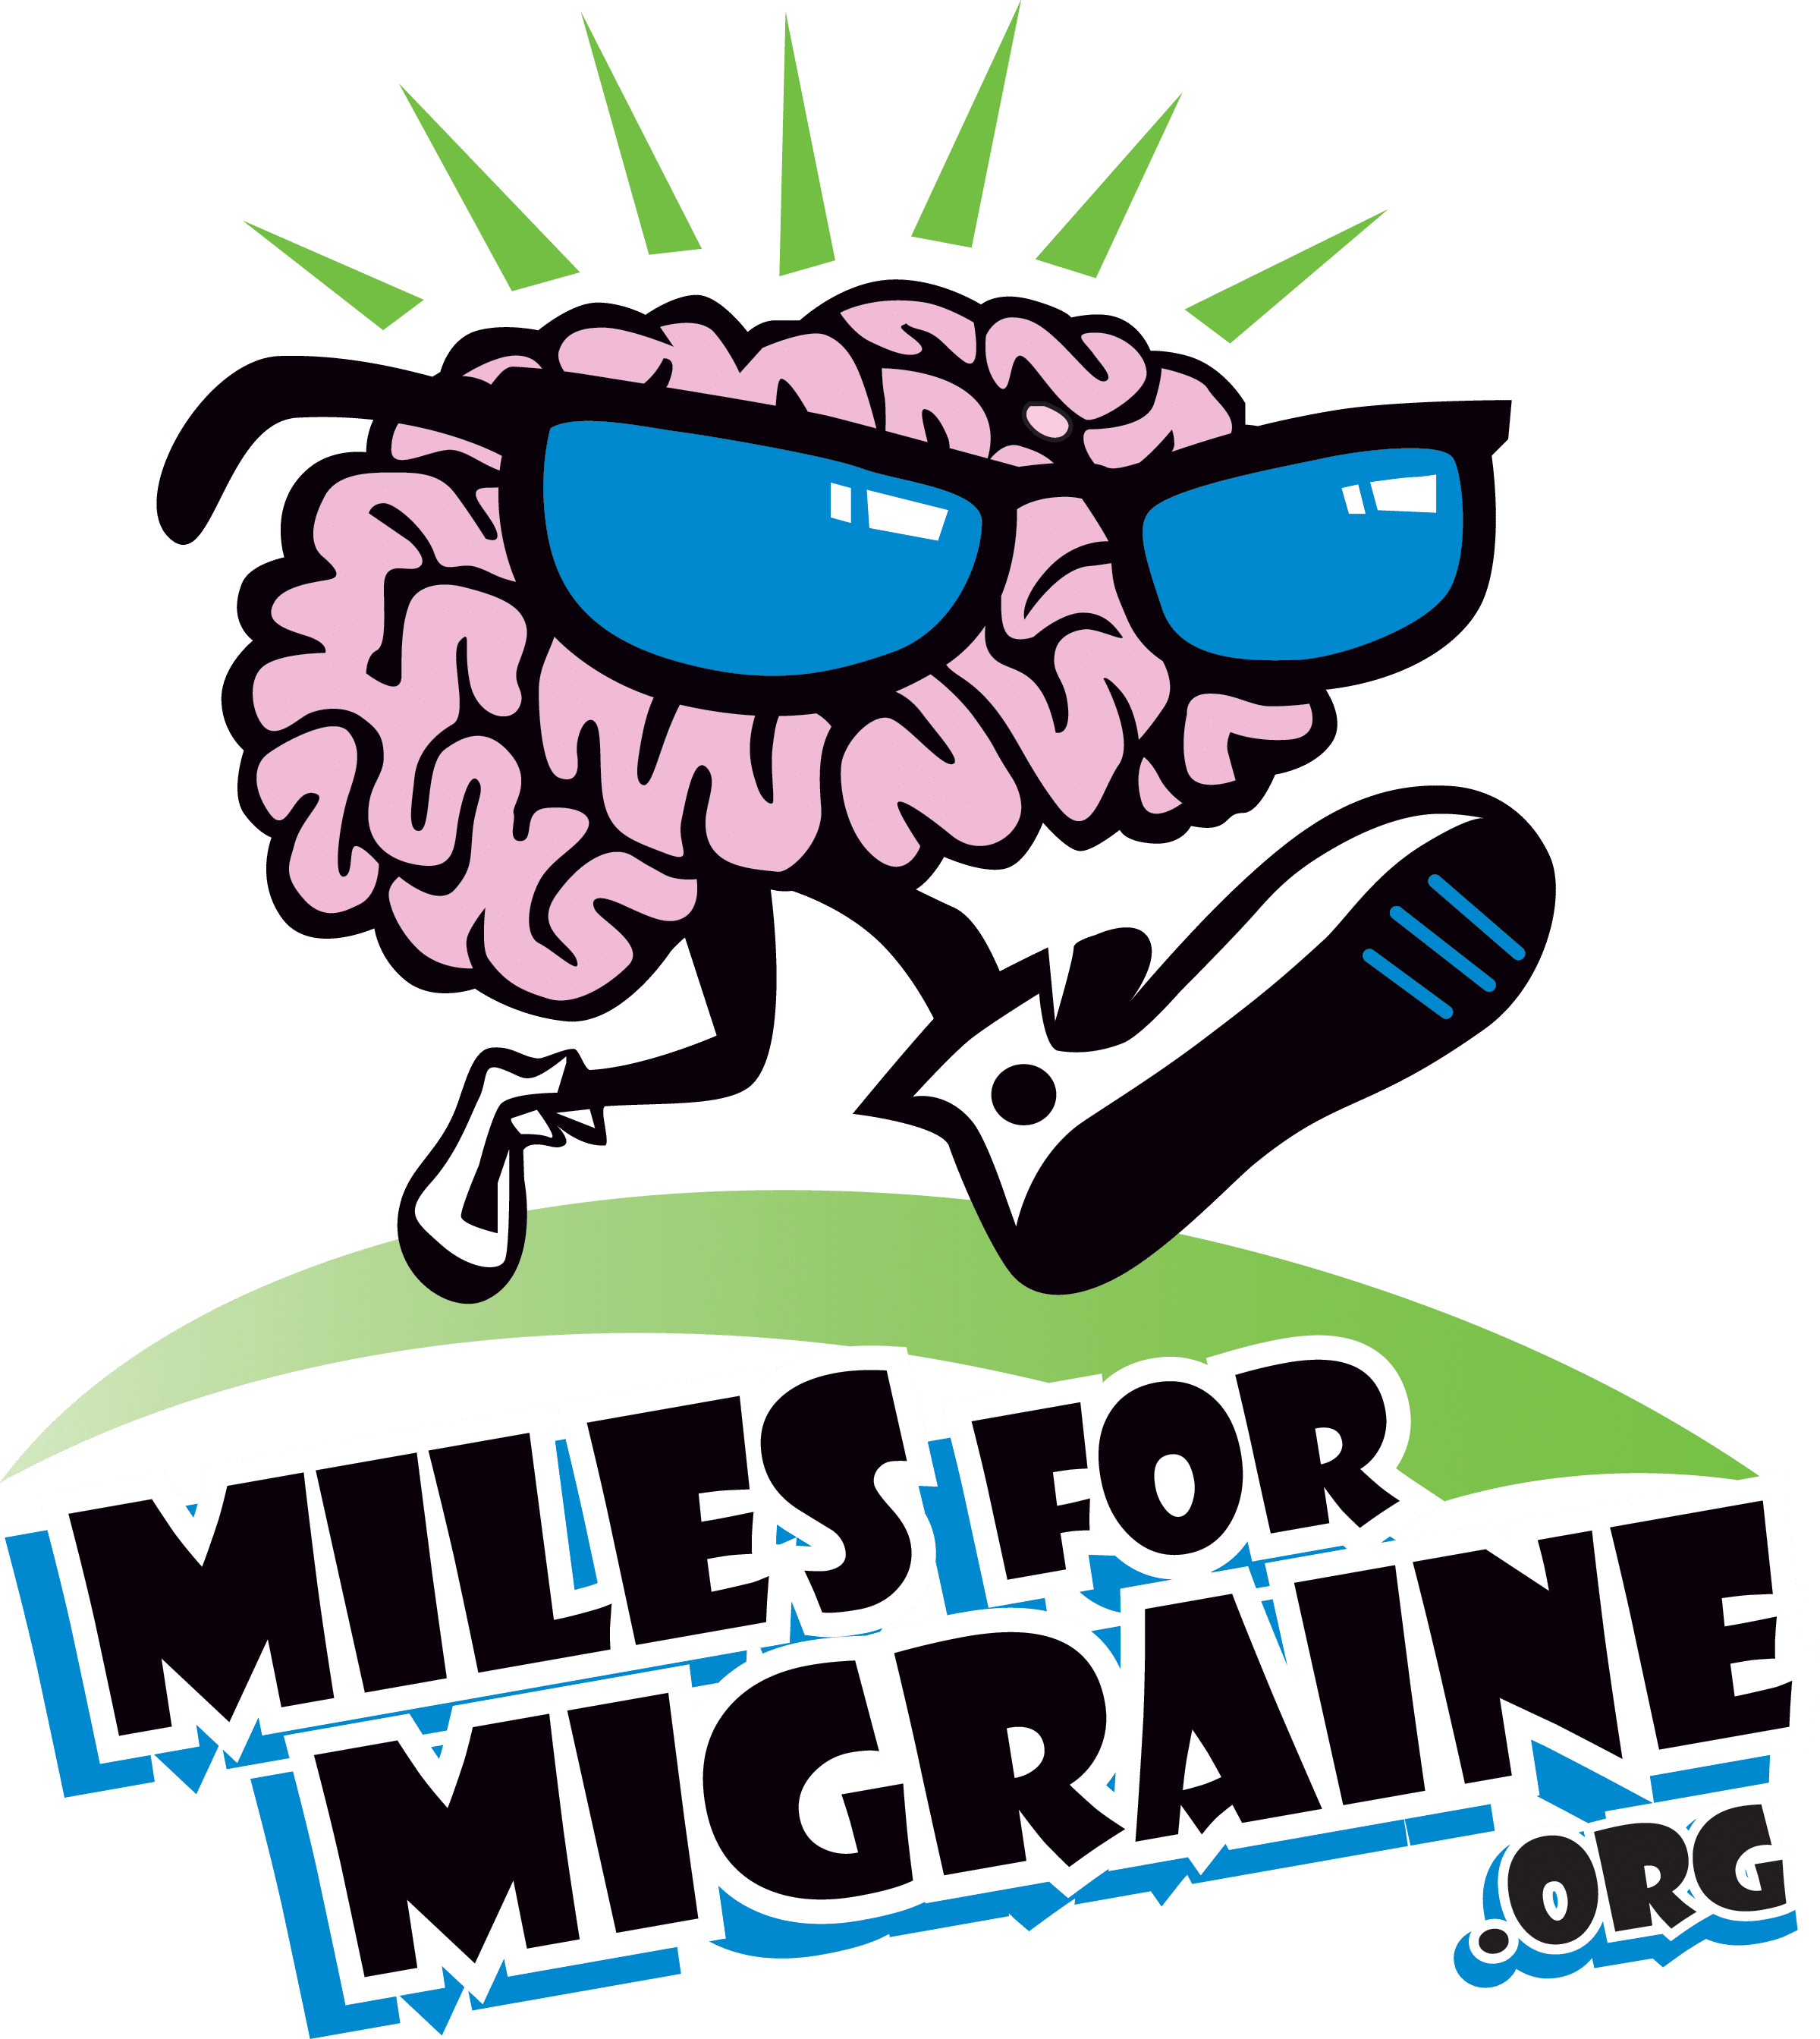 JOIN US OCTOBER 20 FOR MILES FOR MIGRAINE FUN RUN!